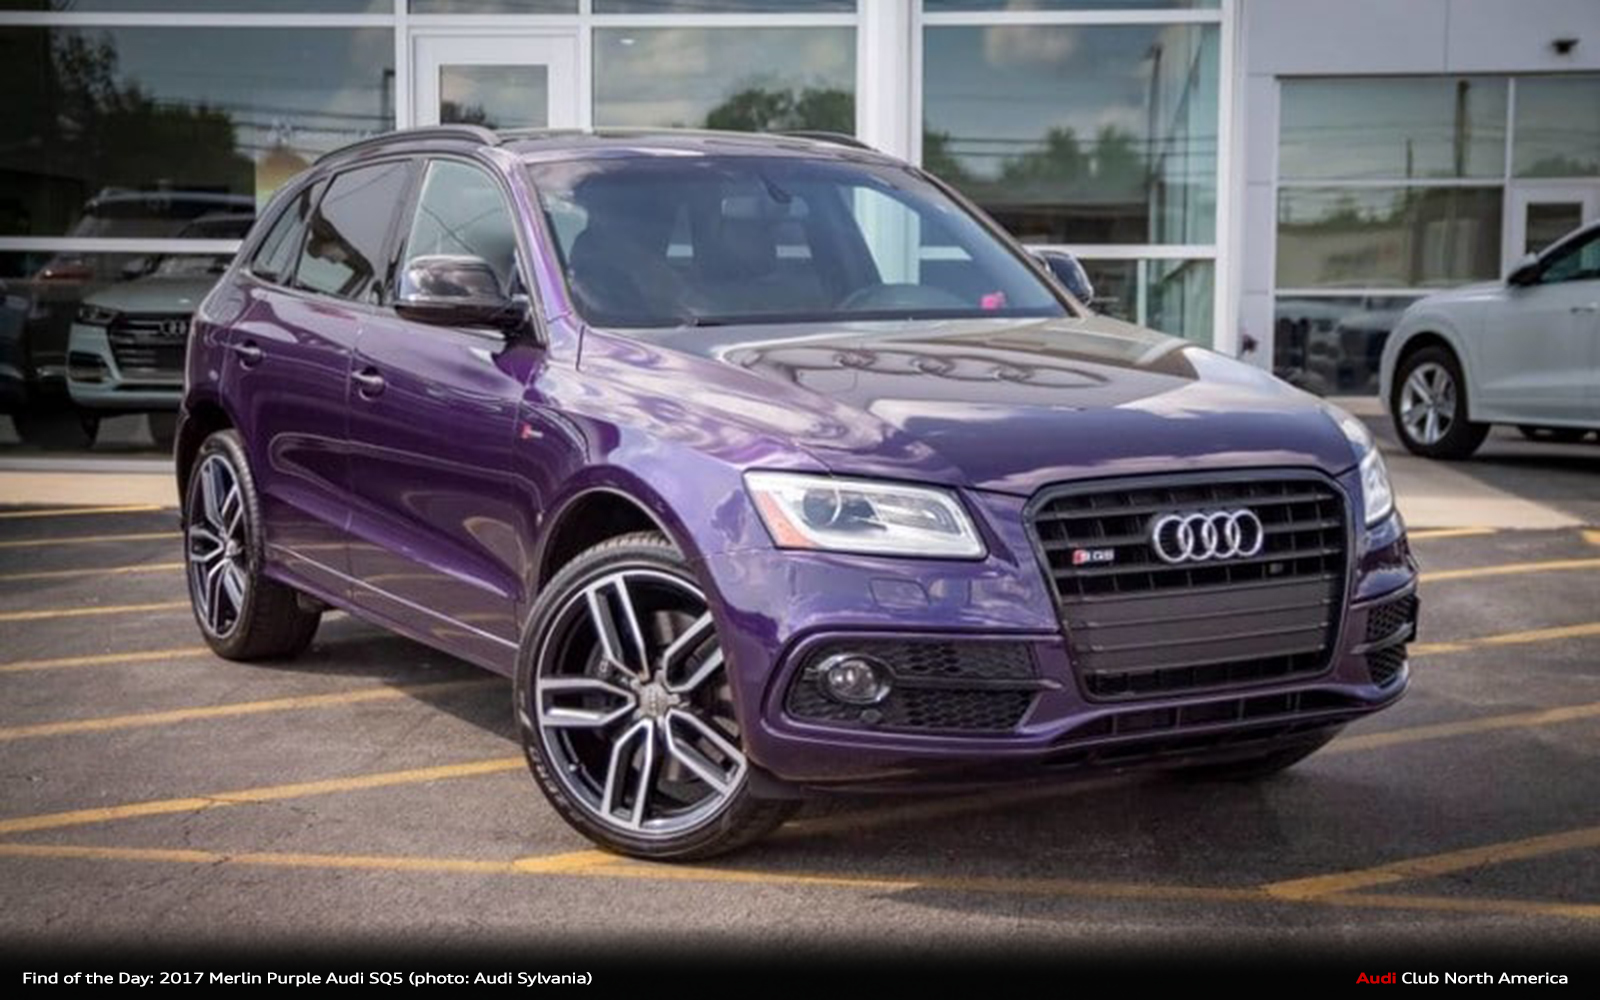 Find of the Day: 2017 Audi exclusive Merlin Purple SQ5